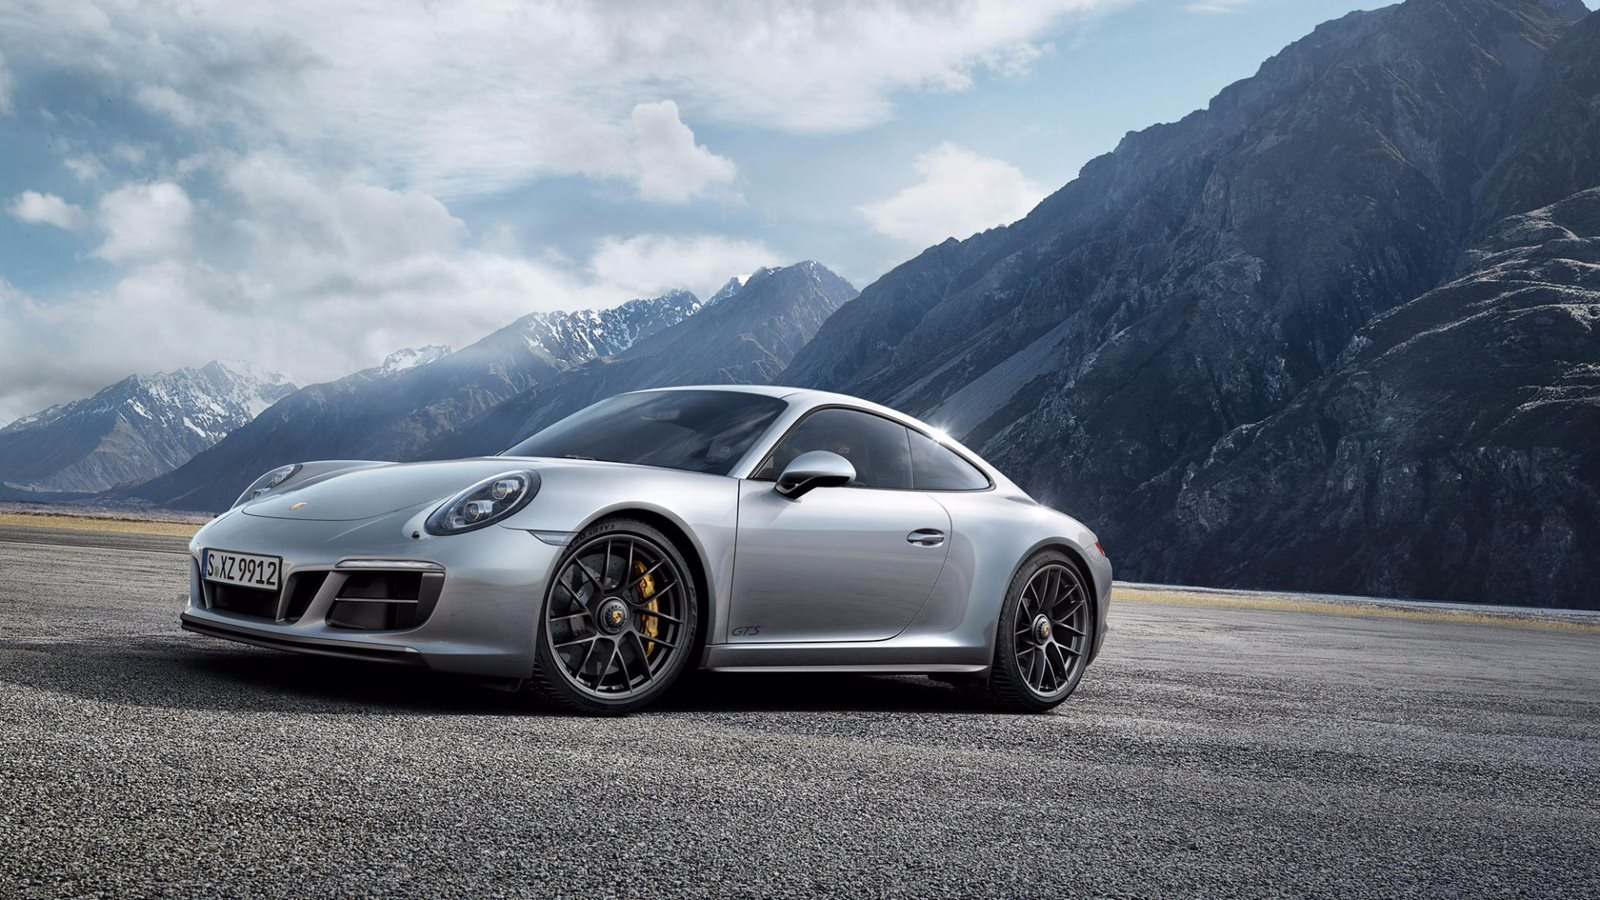 2018 porsche 911 carrera 4 gts review trims specs and price carbuzz. Black Bedroom Furniture Sets. Home Design Ideas